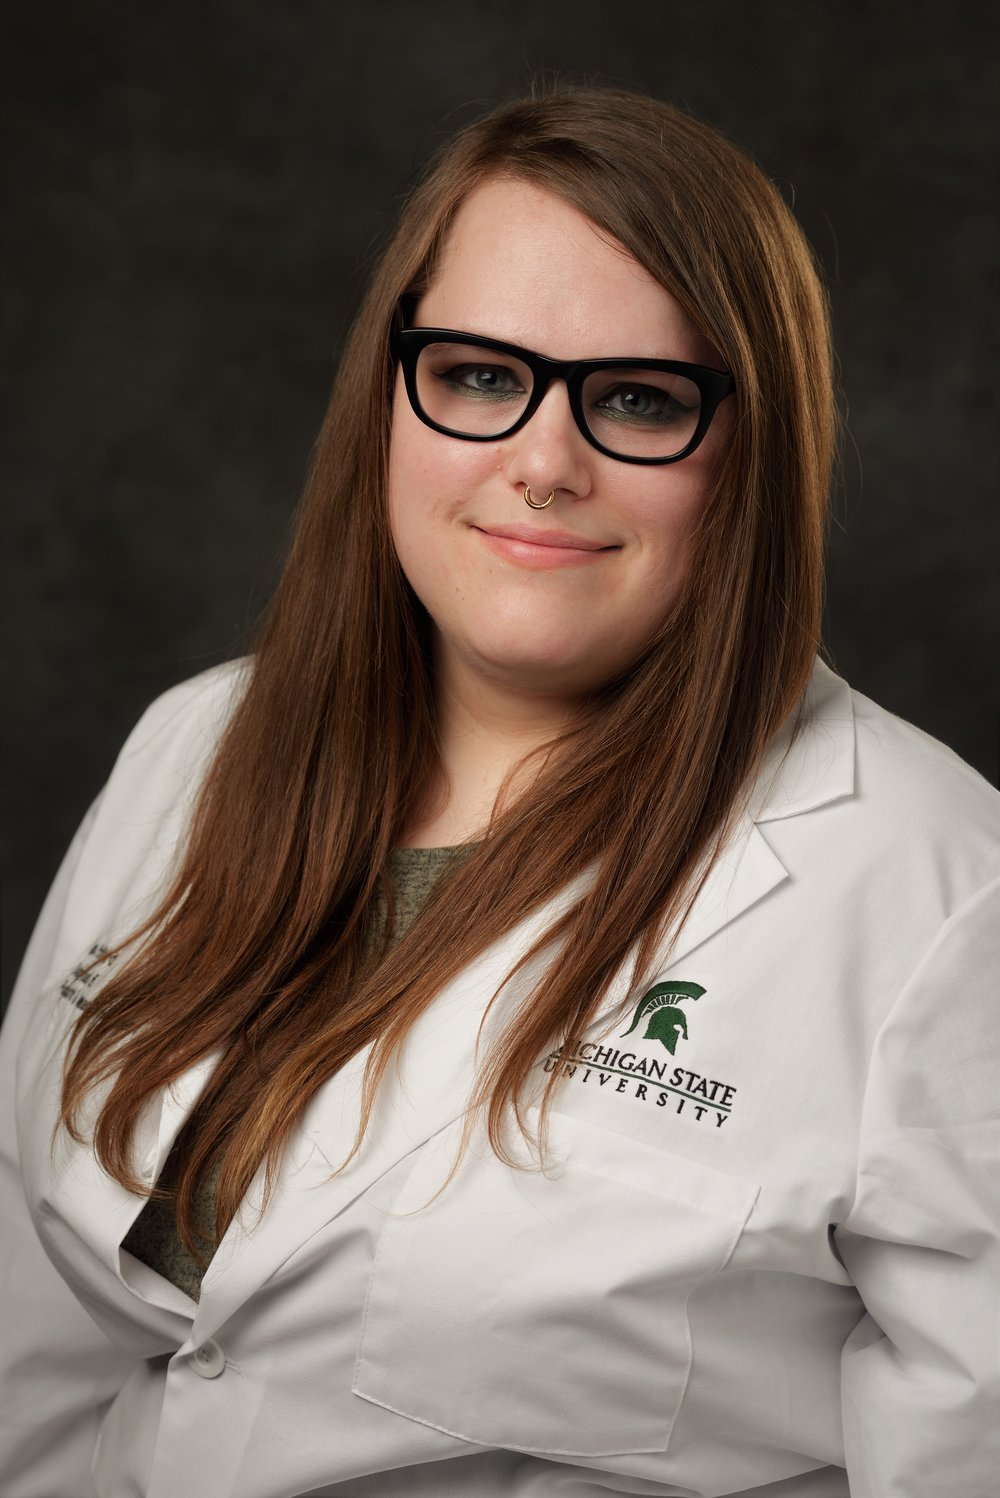 April Stafford, Research Assistant (Lab Manager) - April obtained a B.S. from Western Michigan University in 2012 with a concentration in Molecular Biology. She worked for the Van Andel Research Institute for four years in both the Vivarium and the Laboratory of Germline modification and Cryopreservation. In January of 2018 she began working in the Vogt Lab.